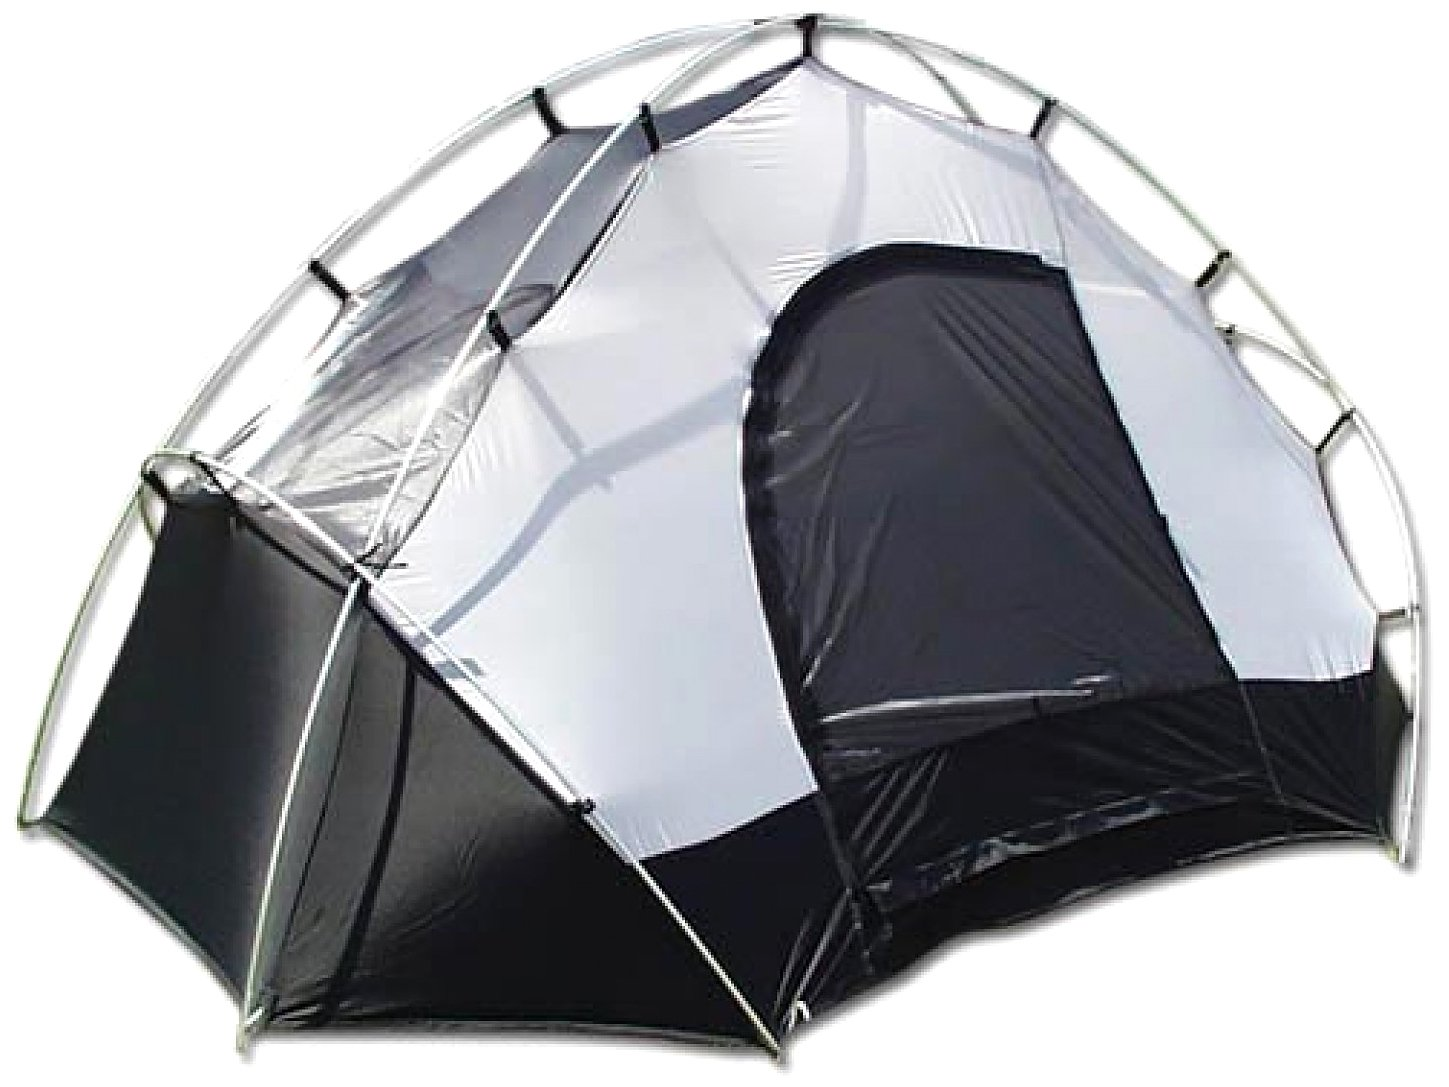 Amazon.com The Backside by Black Pine T-4 T-Series 2-Person 4-Season Backpacking Tent Sports u0026 Outdoors  sc 1 st  Amazon.com & Amazon.com: The Backside by Black Pine T-4 T-Series 2-Person 4 ...